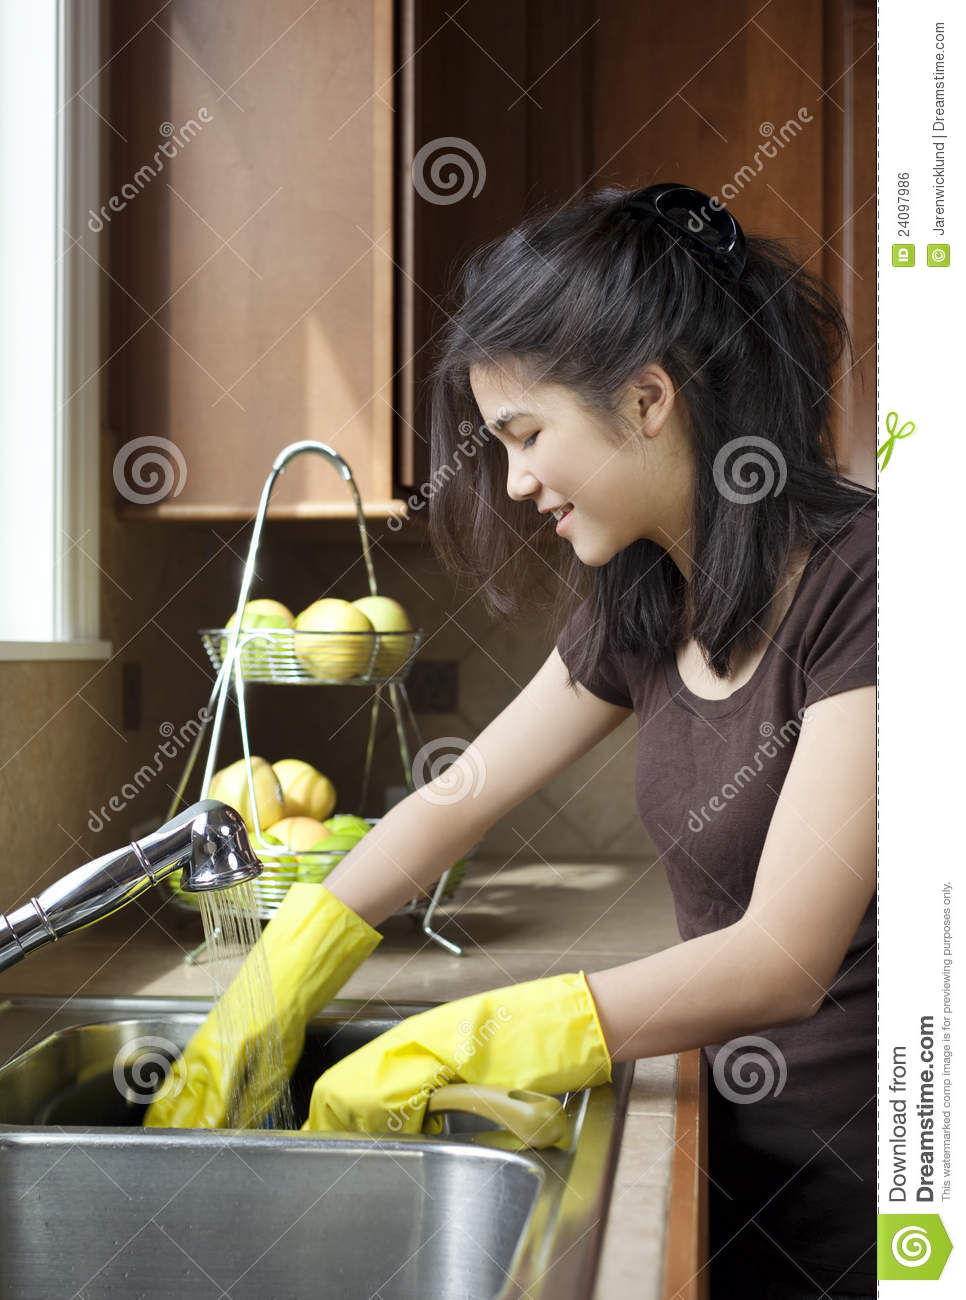 Teen Girl Washing Dishes At Kitchen Sink Stock Photo  Image of thai pretty 24097986